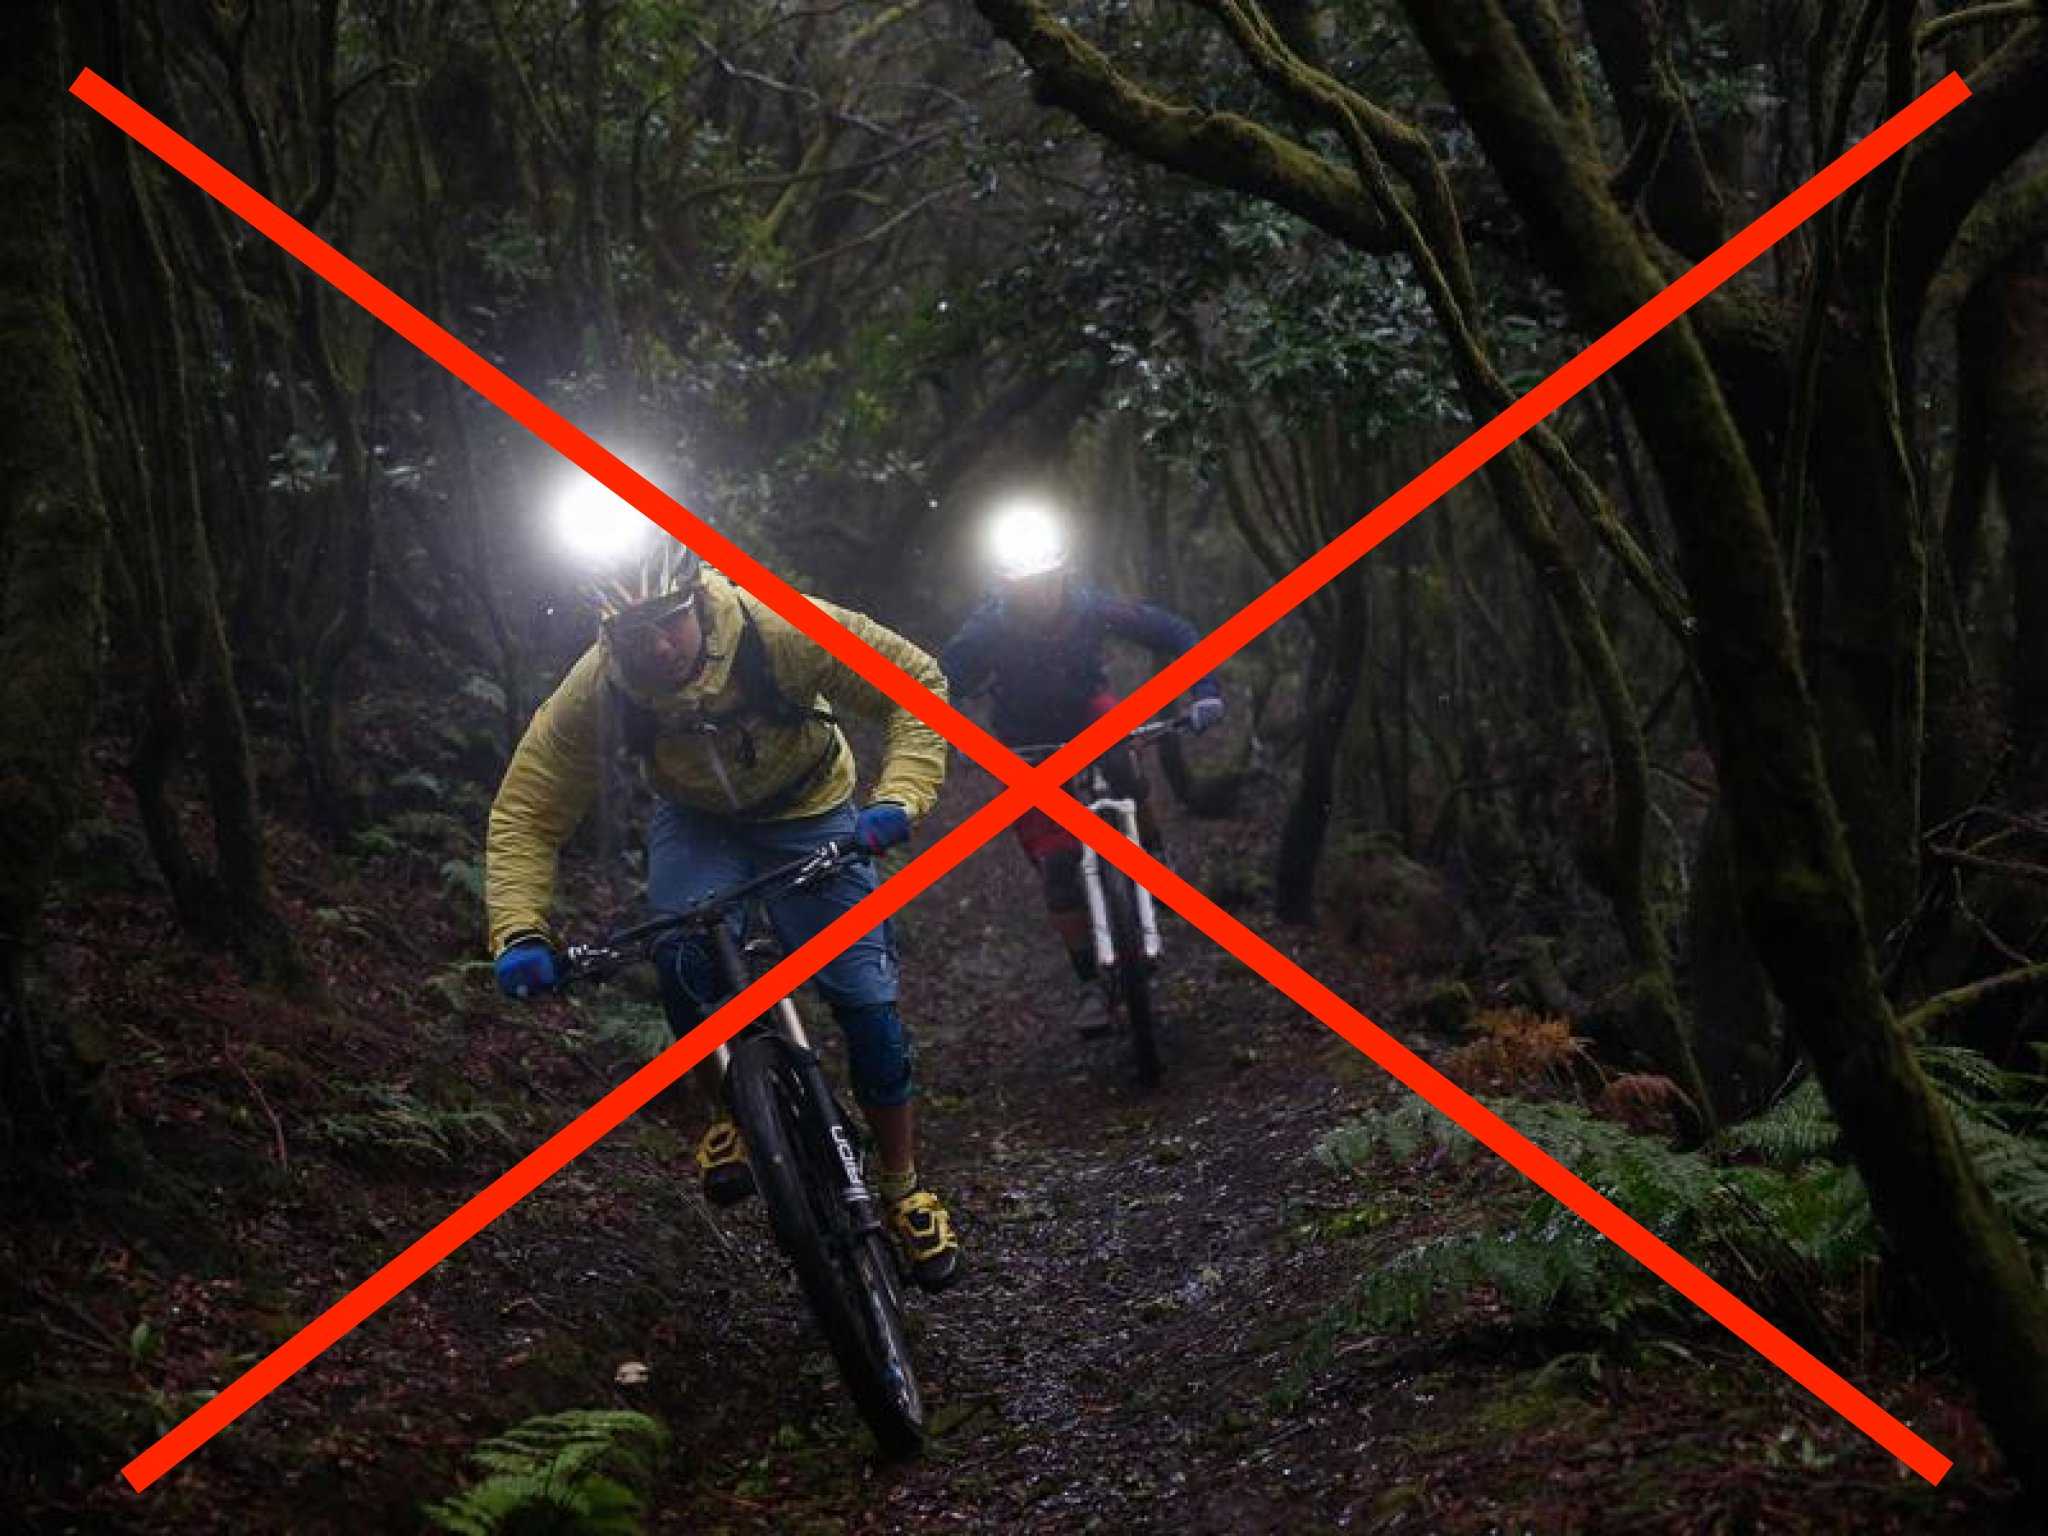 Forbidden riding on the trails in the dark!